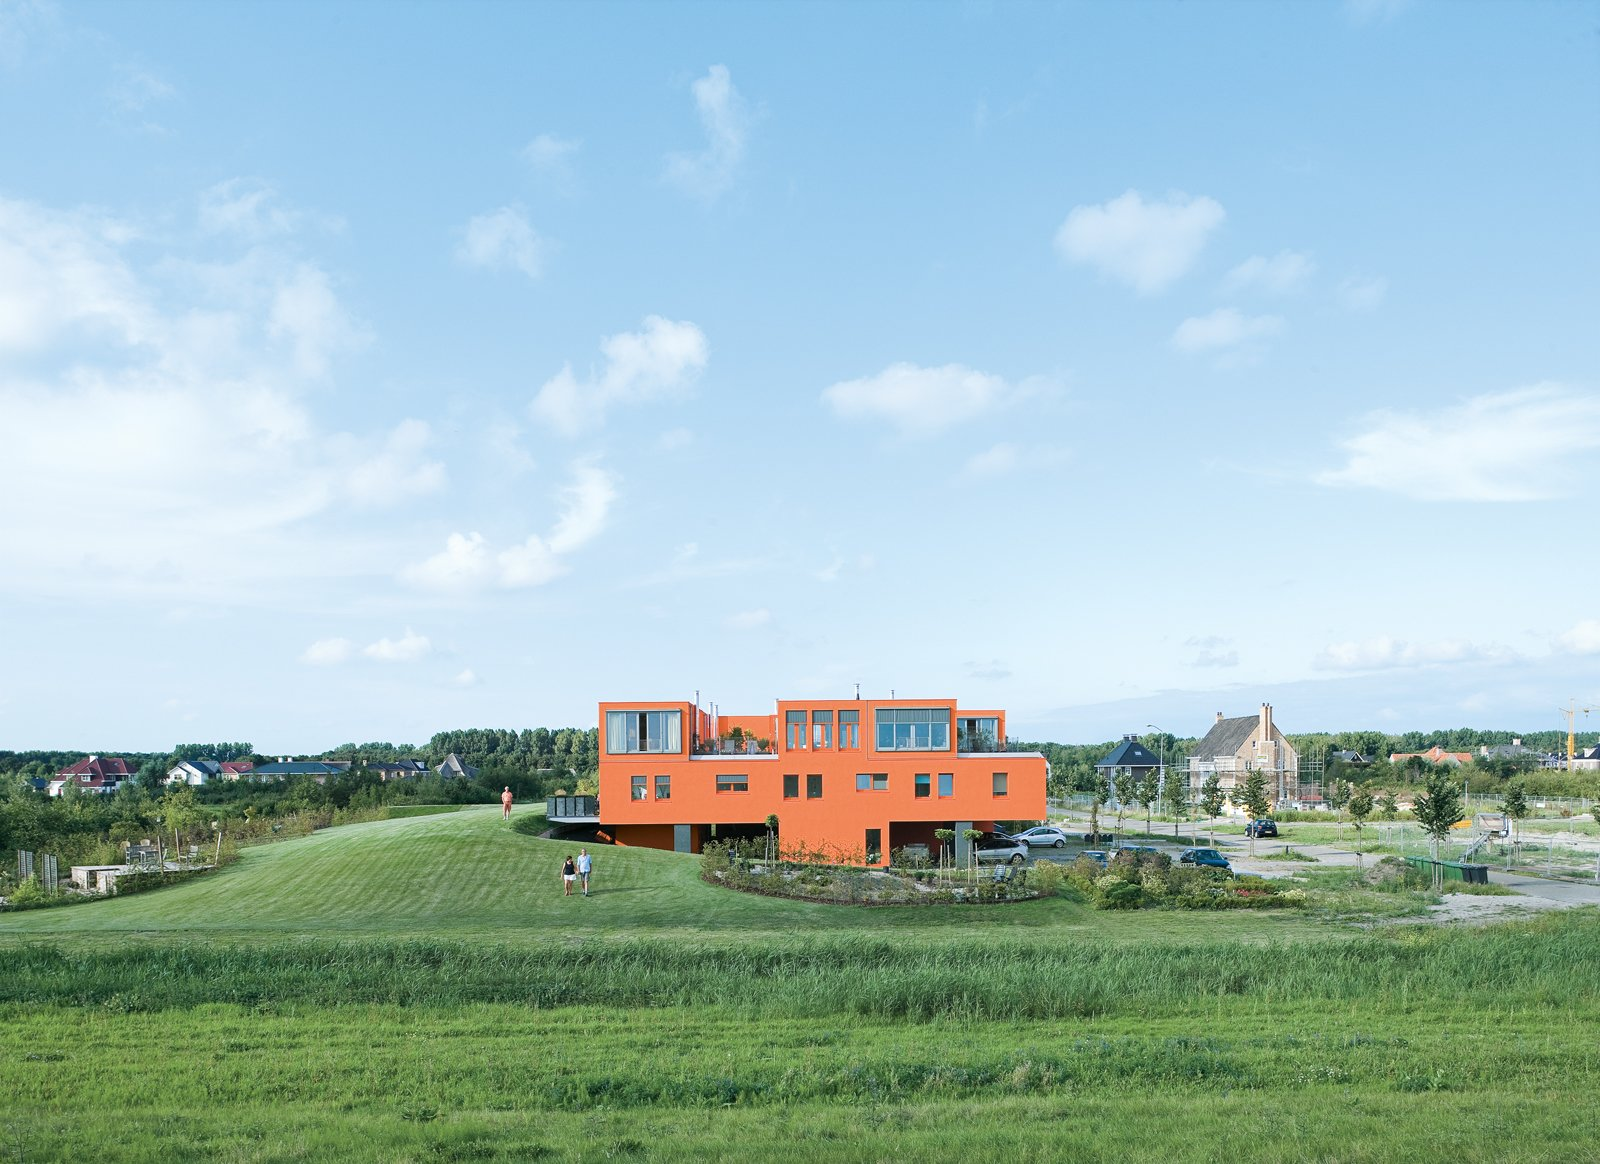 Seen here from the south, Villa van Vijven's orange facade is meant to mimic the tiled rooftops of Holland's country buildings, while the building's horizontal pull echoes the flat landscape. The second-floor living rooms look out on the 4,200-square-foot communal garden, one of only two shared spaces in the whole community. Bob Krone, Koos Sweringa, and Marianne Schram stroll the grounds.